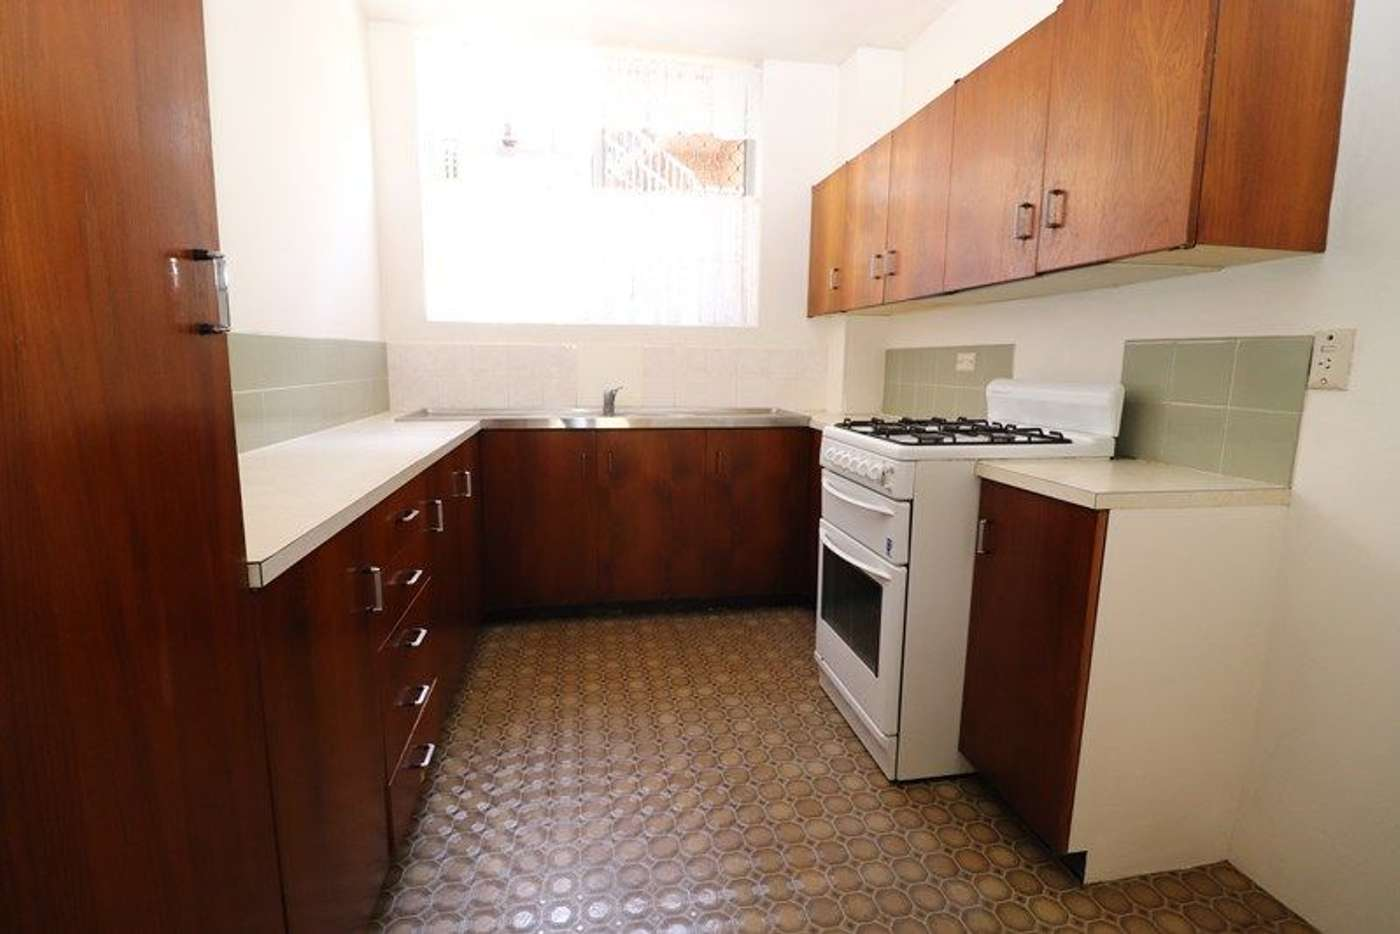 Main view of Homely unit listing, 1/22 Raby Road, Coorparoo QLD 4151